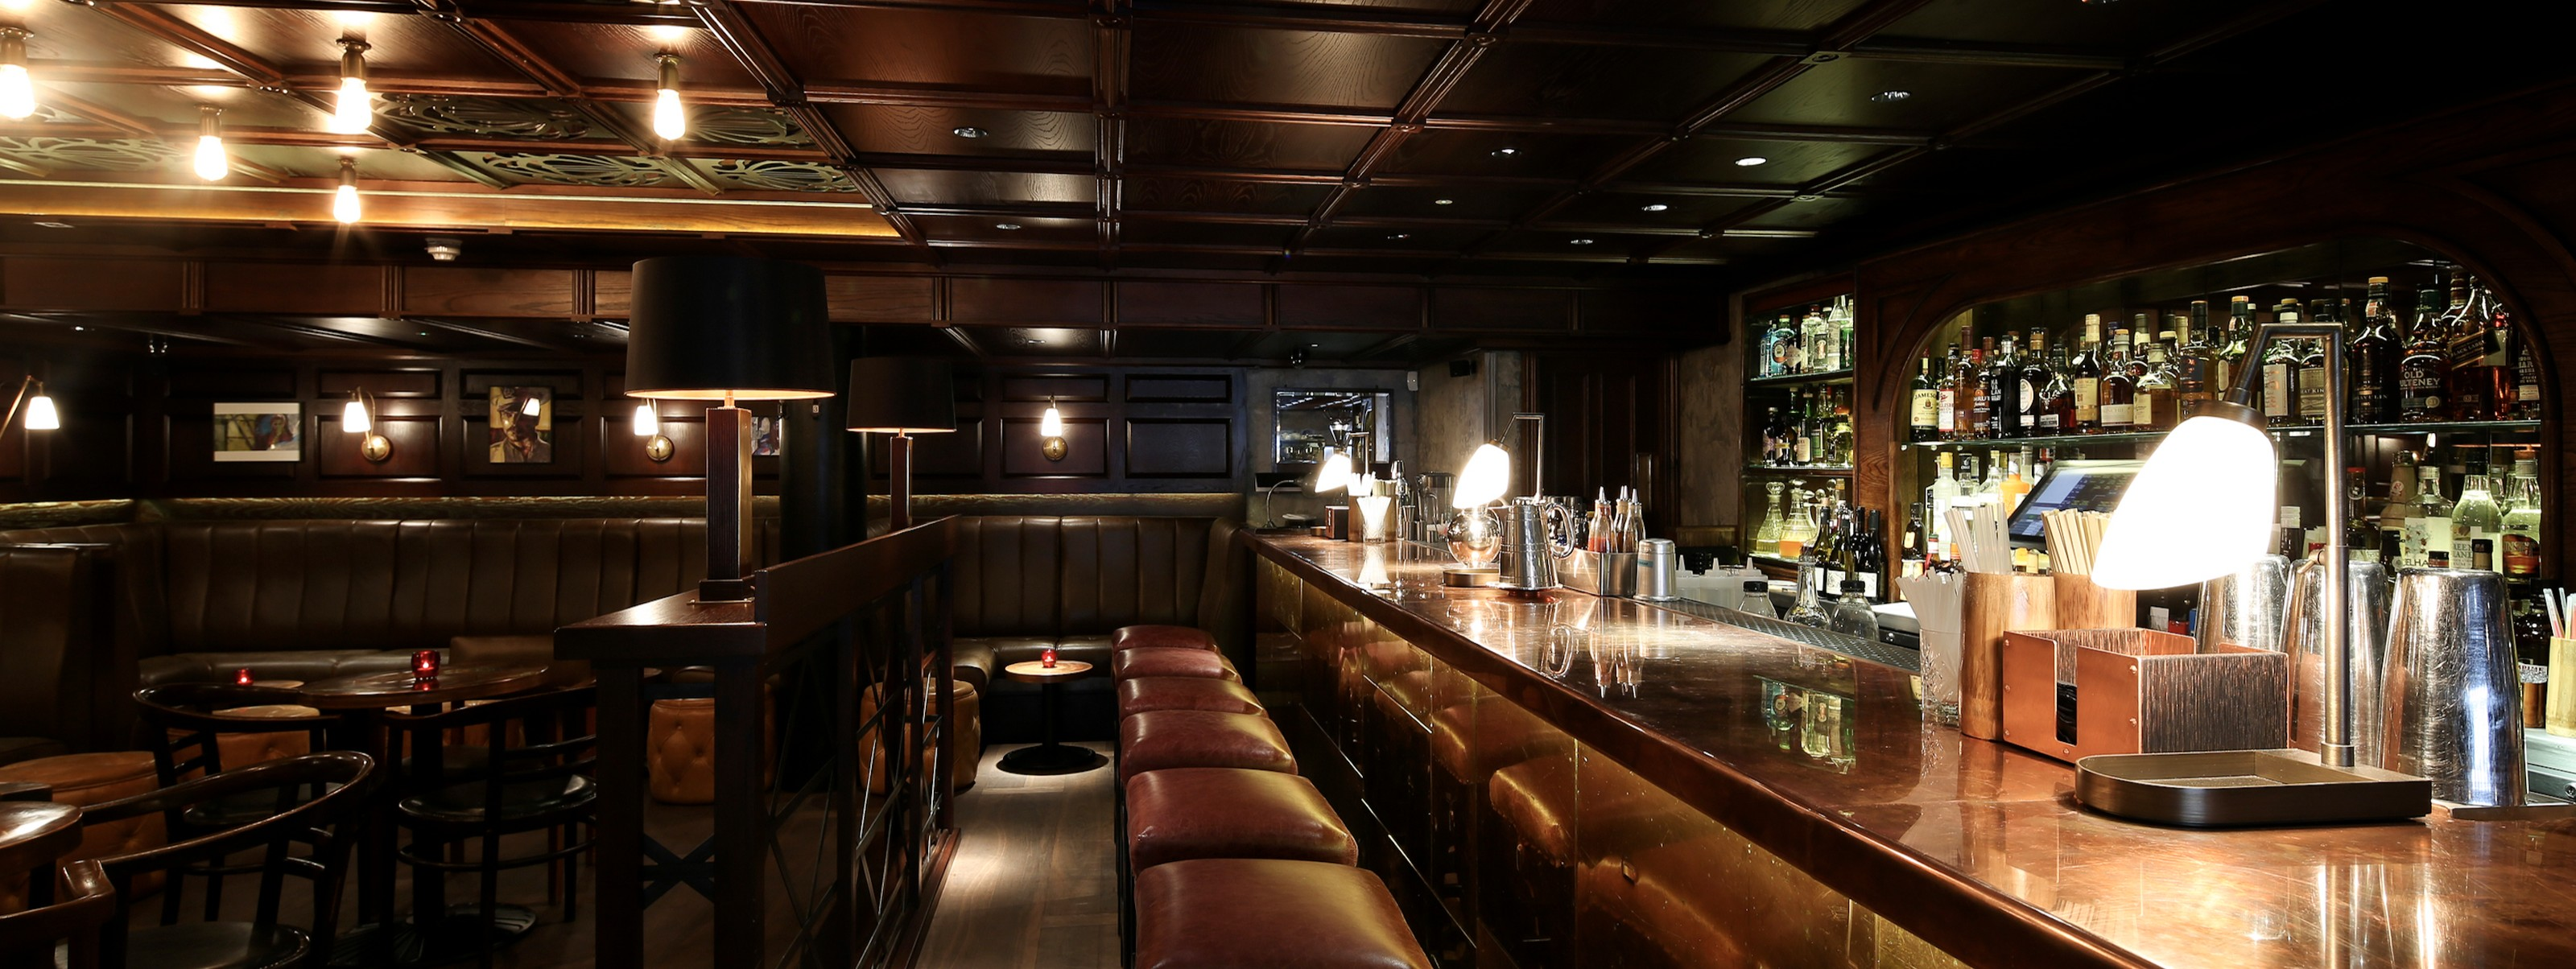 best bars in portland to get laid